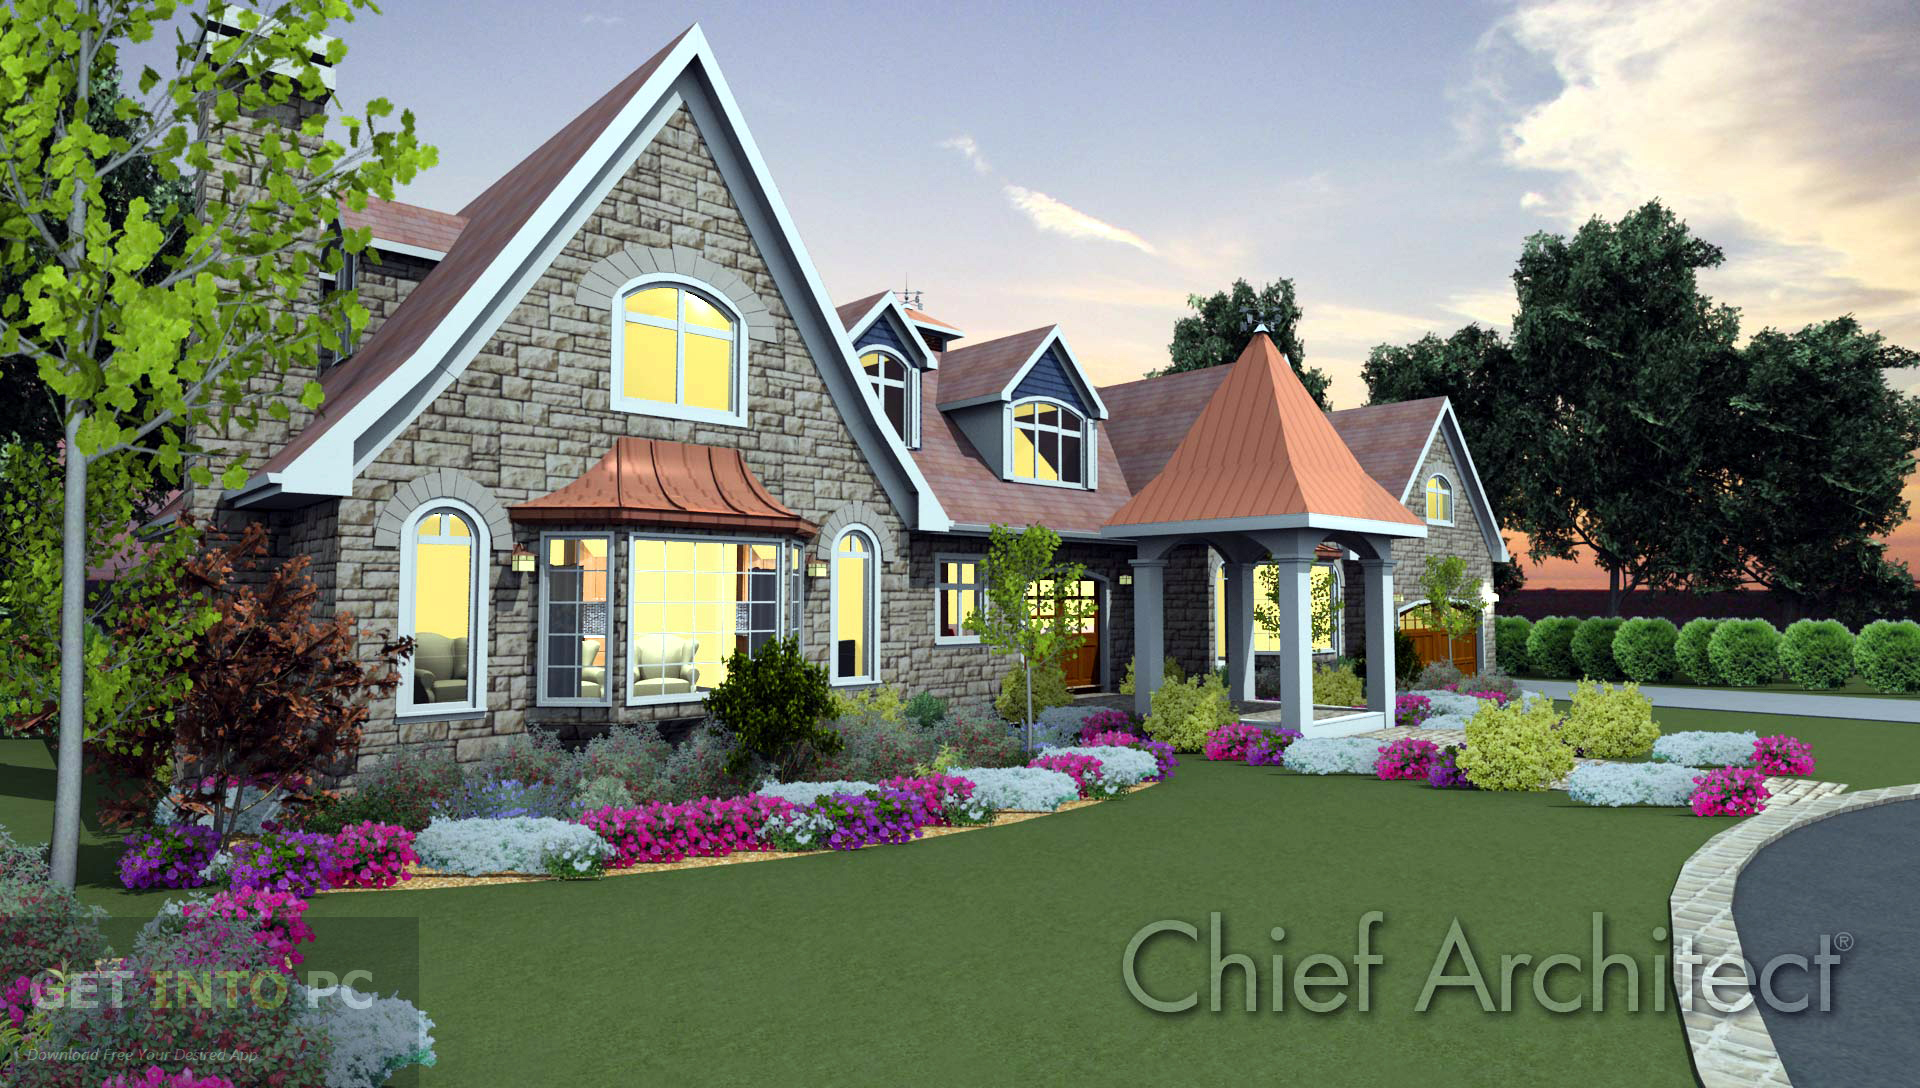 Chief architect premier free download 3d architect software free download